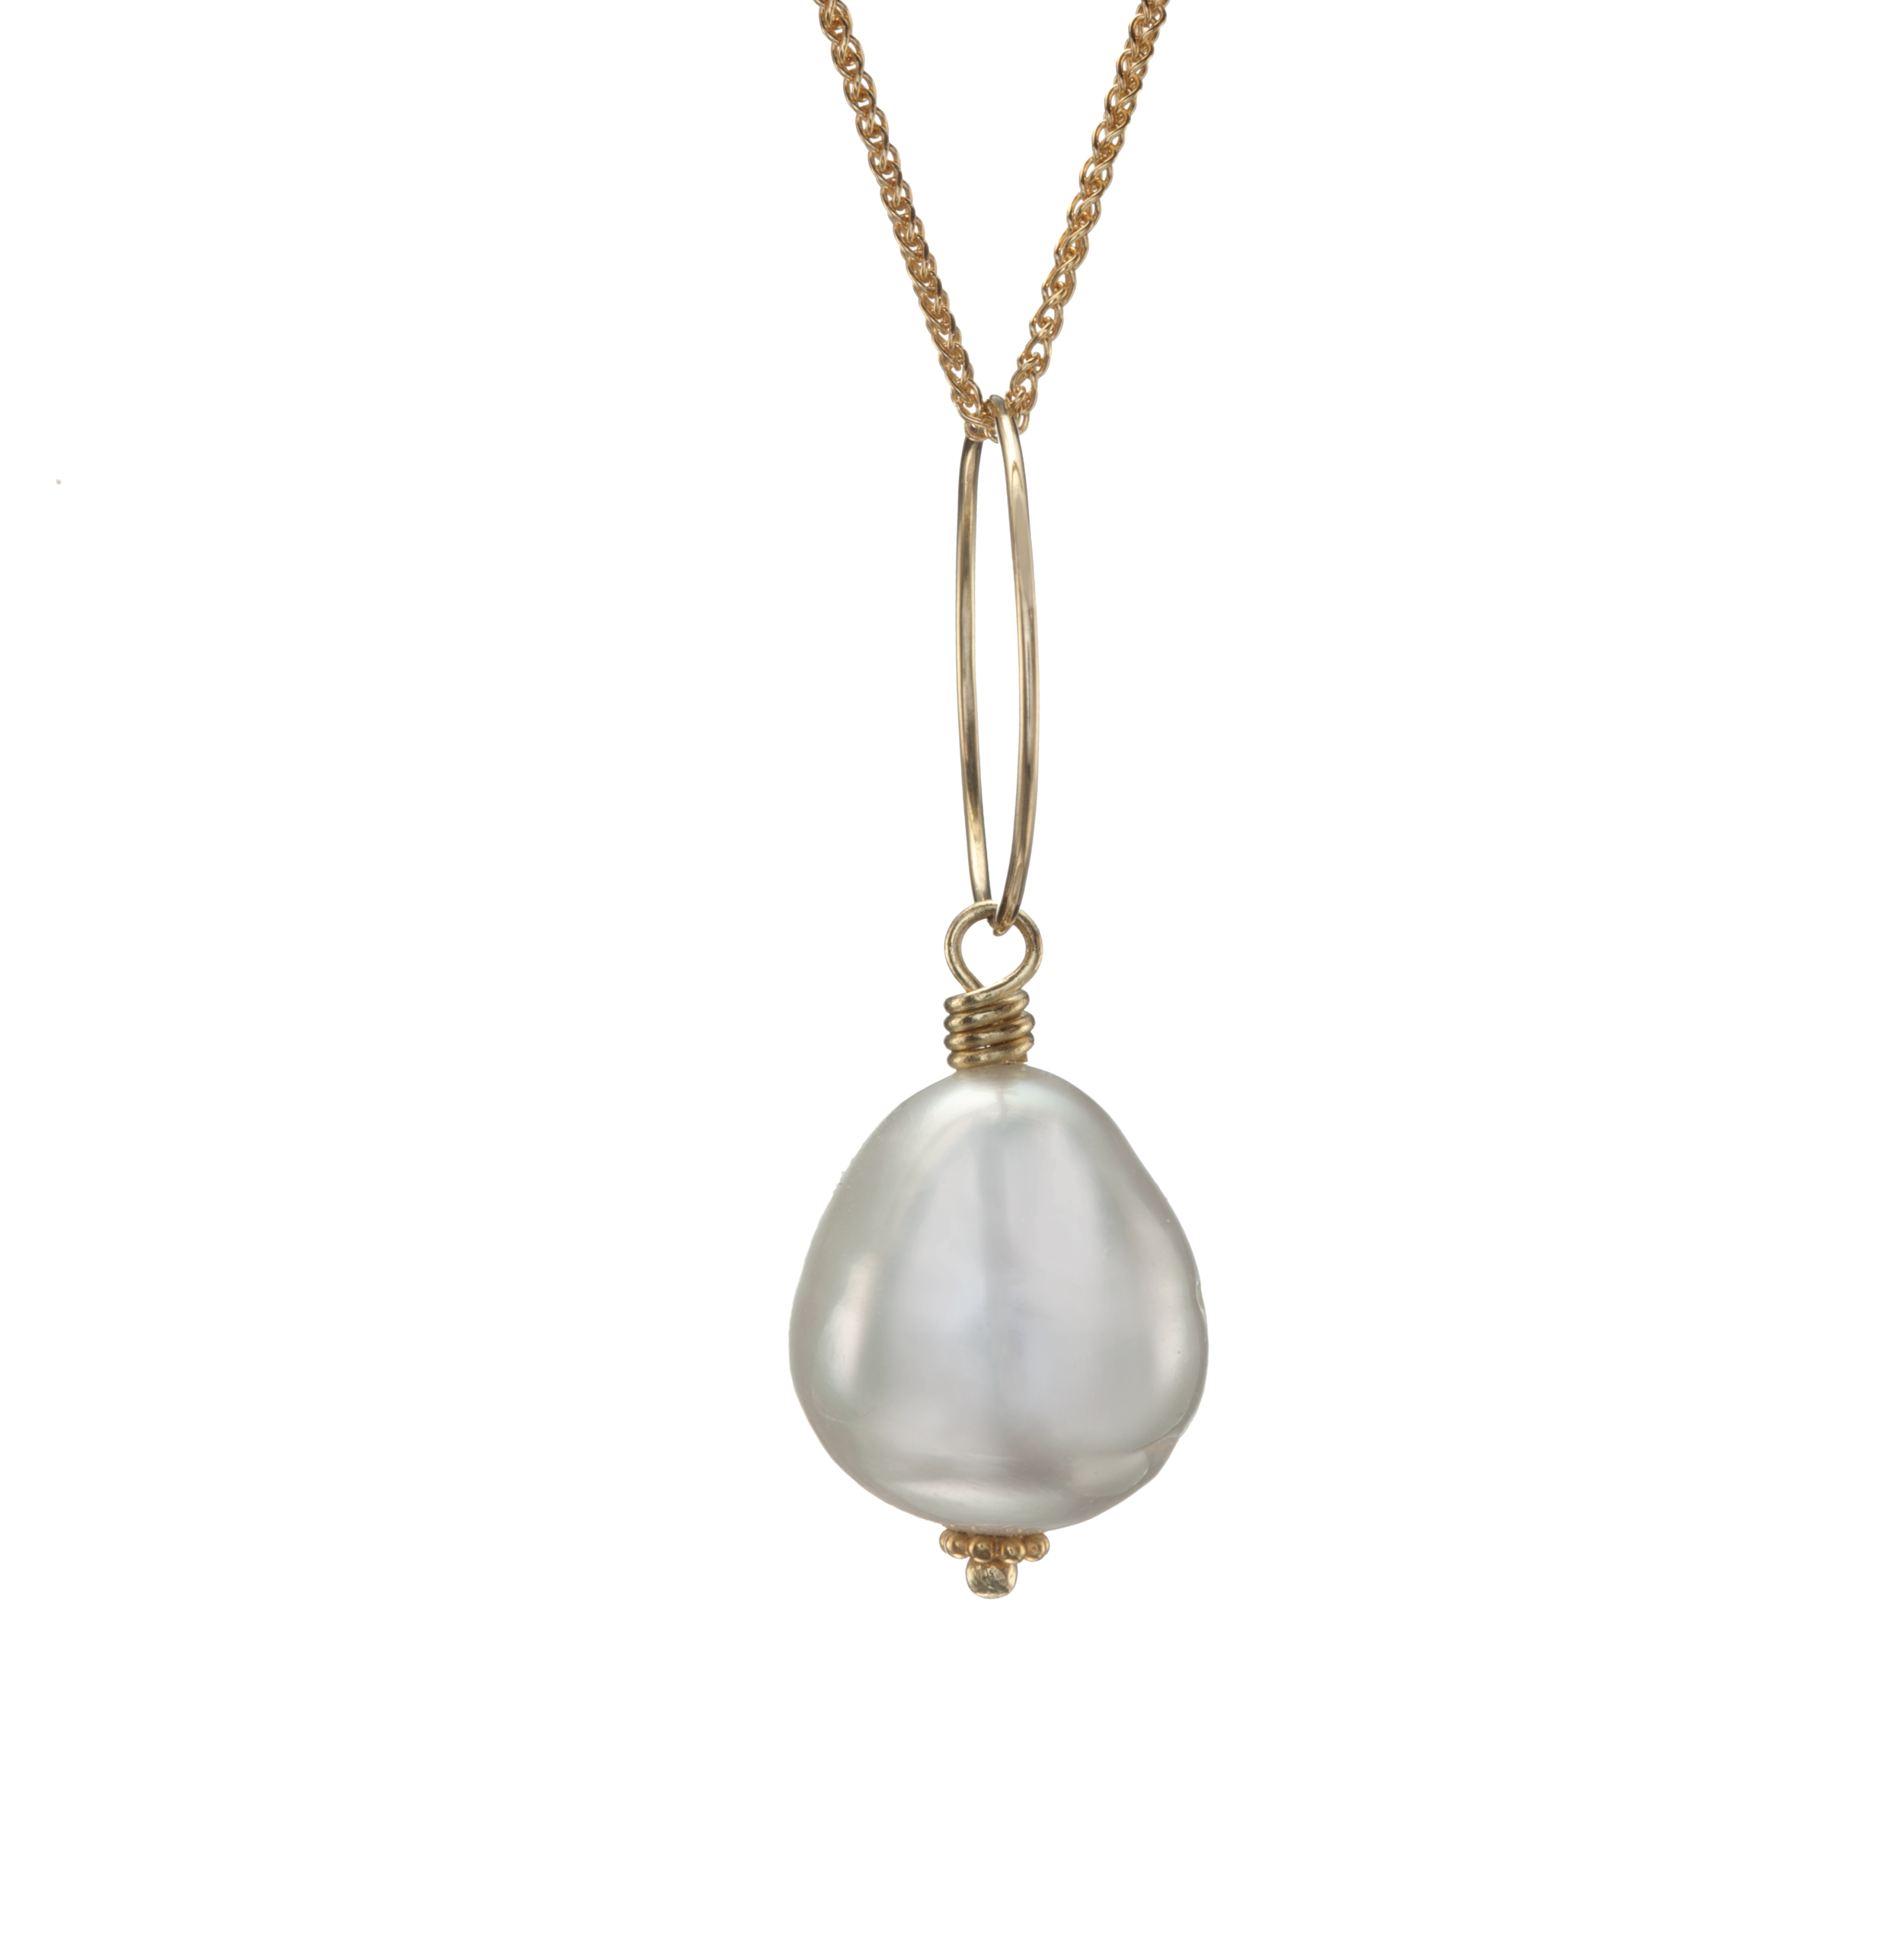 South Sea Pearl Necklace on 18K Chain copy May 2018 copy.png